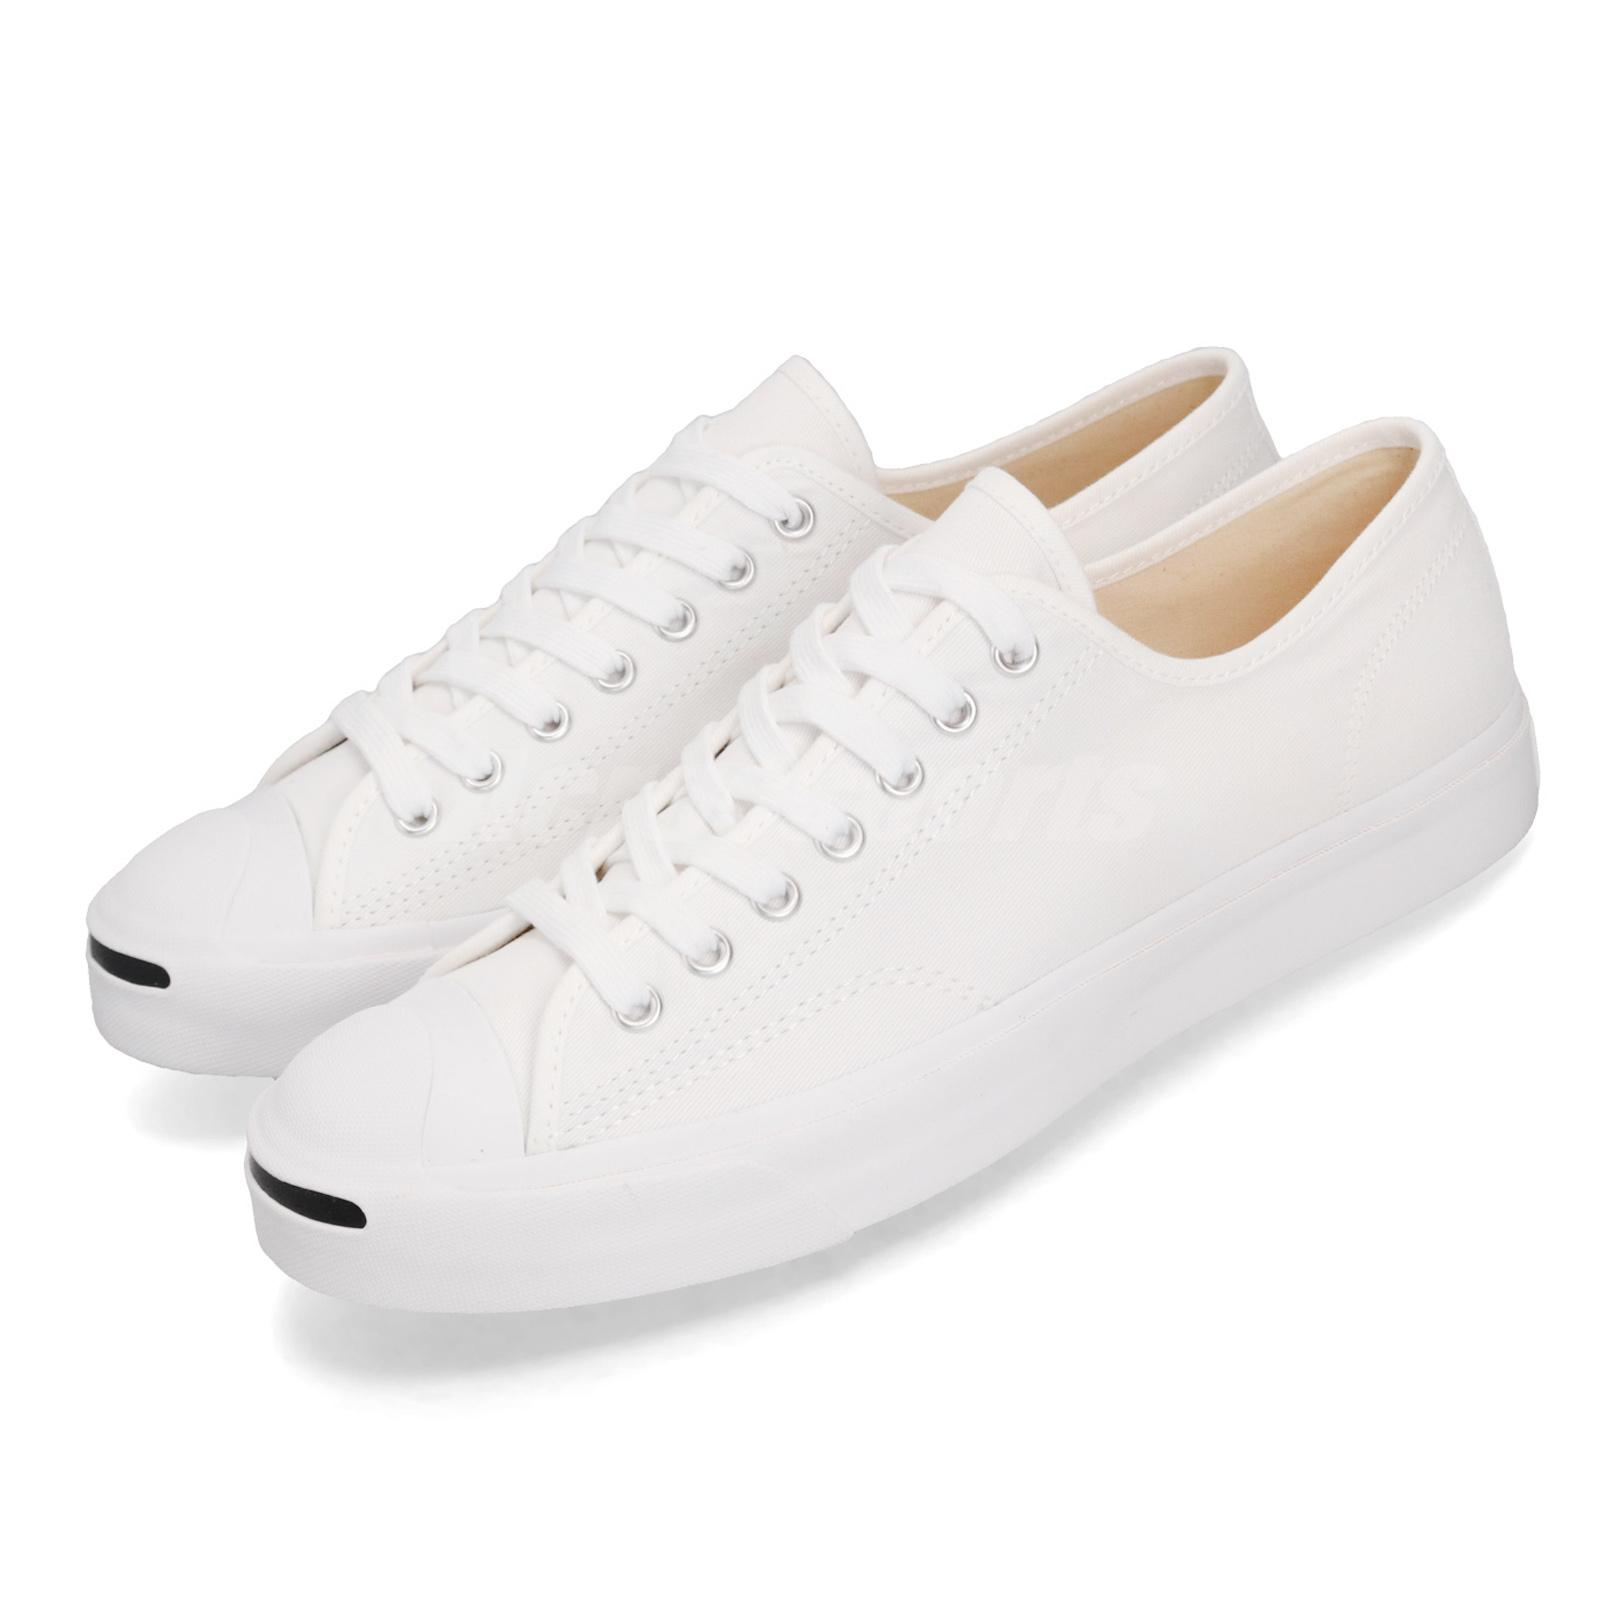 2c44a7cc6f5f Details about Converse Jack Purcell OX White Men Women Unisex Casual Shoes  Sneakers 164057C